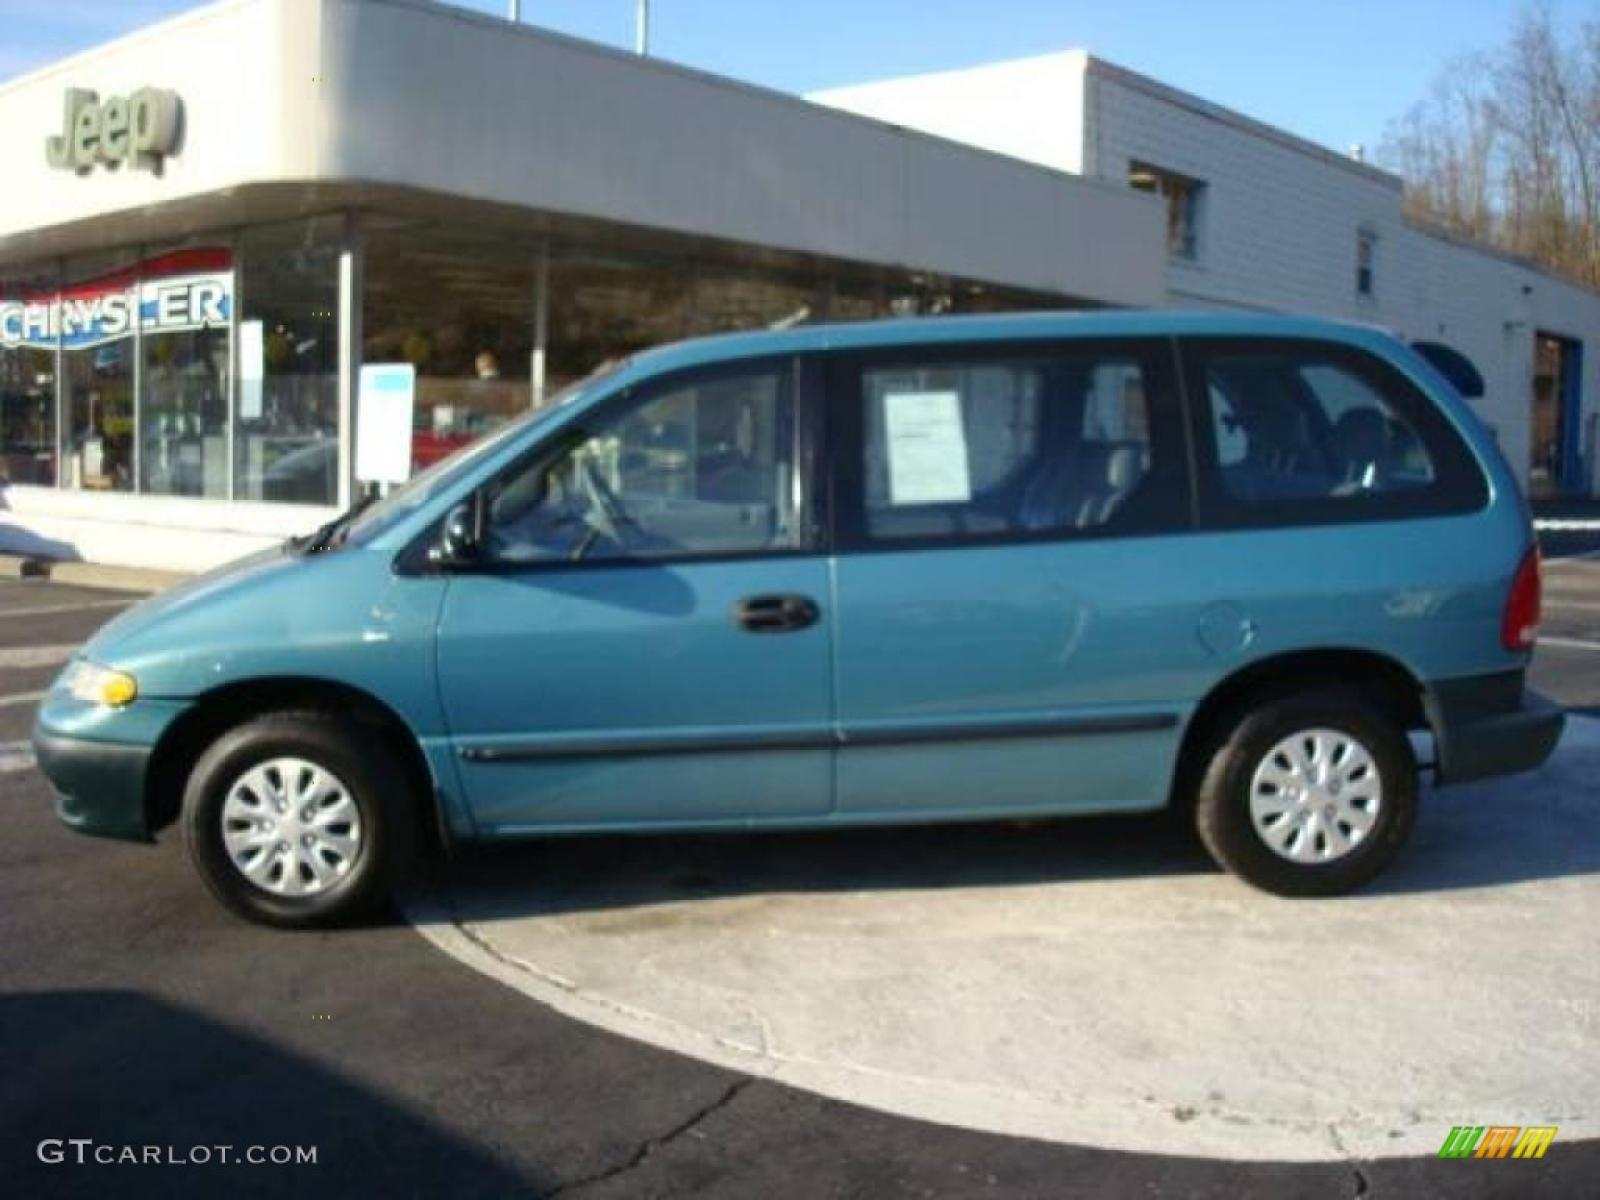 1999 plymouth voyager information and photos zombiedrive 1999 plymouth voyager fuel pump 1999 plymouth voyager specs